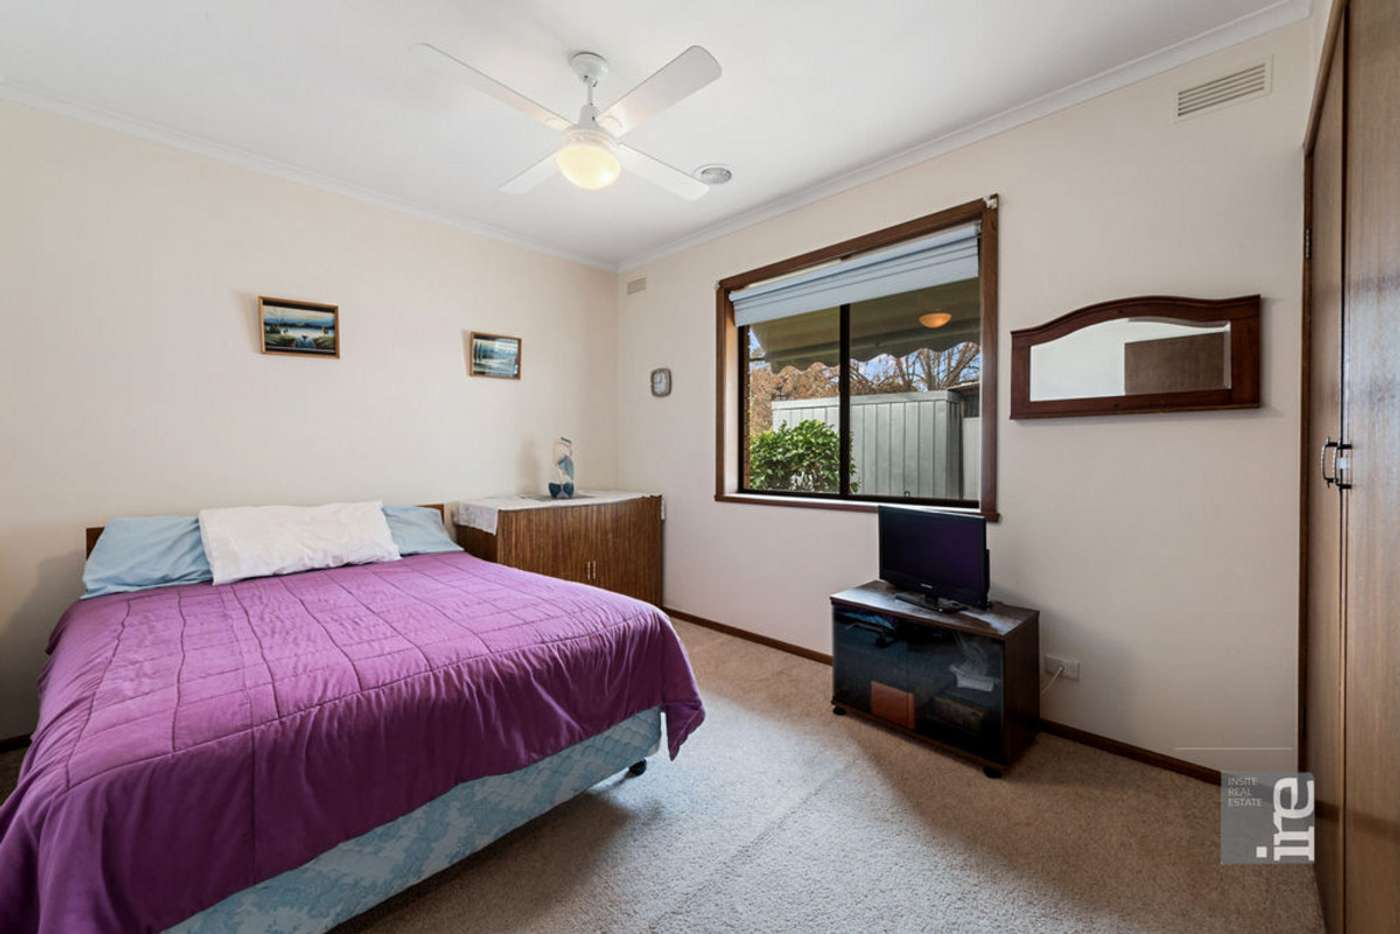 Sixth view of Homely house listing, 49 Franklin Street, Wangaratta VIC 3677